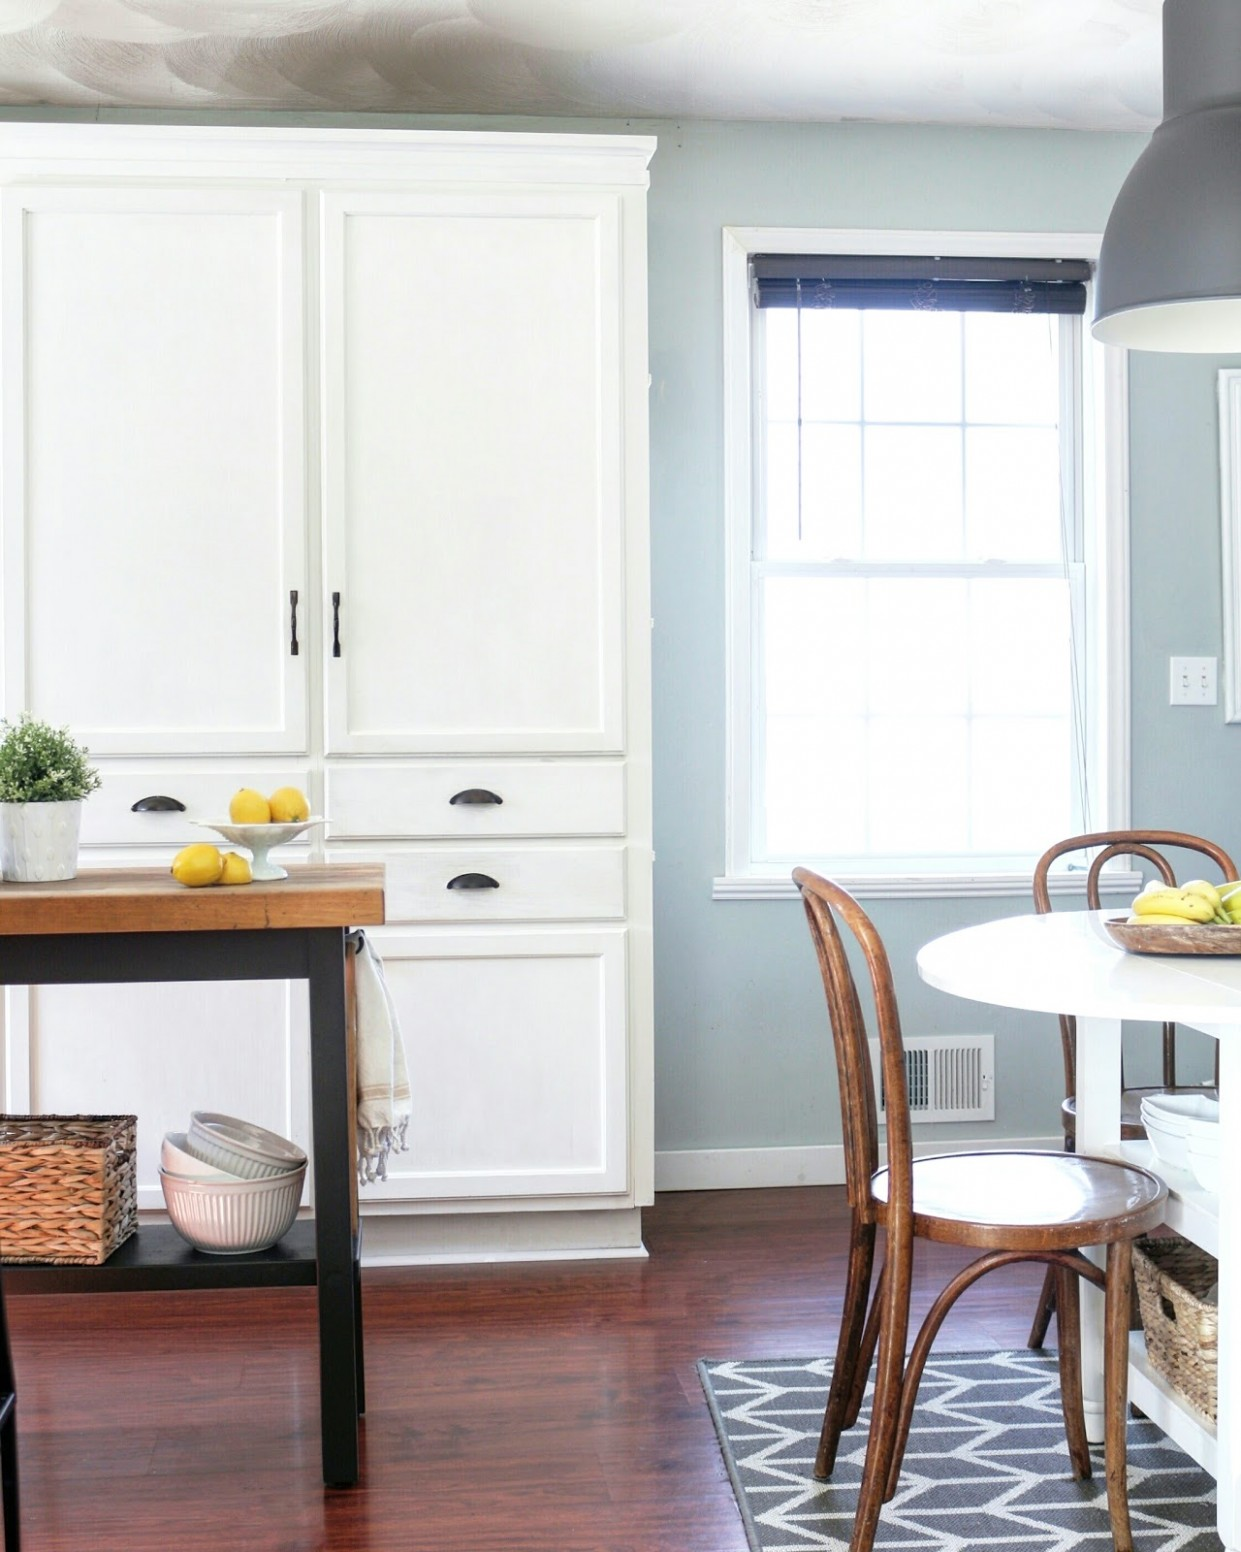 My DIY Kitchen: Cabinet Crown Molding, How to Fake the Look  - Simple Crown Molding On Kitchen Cabinets